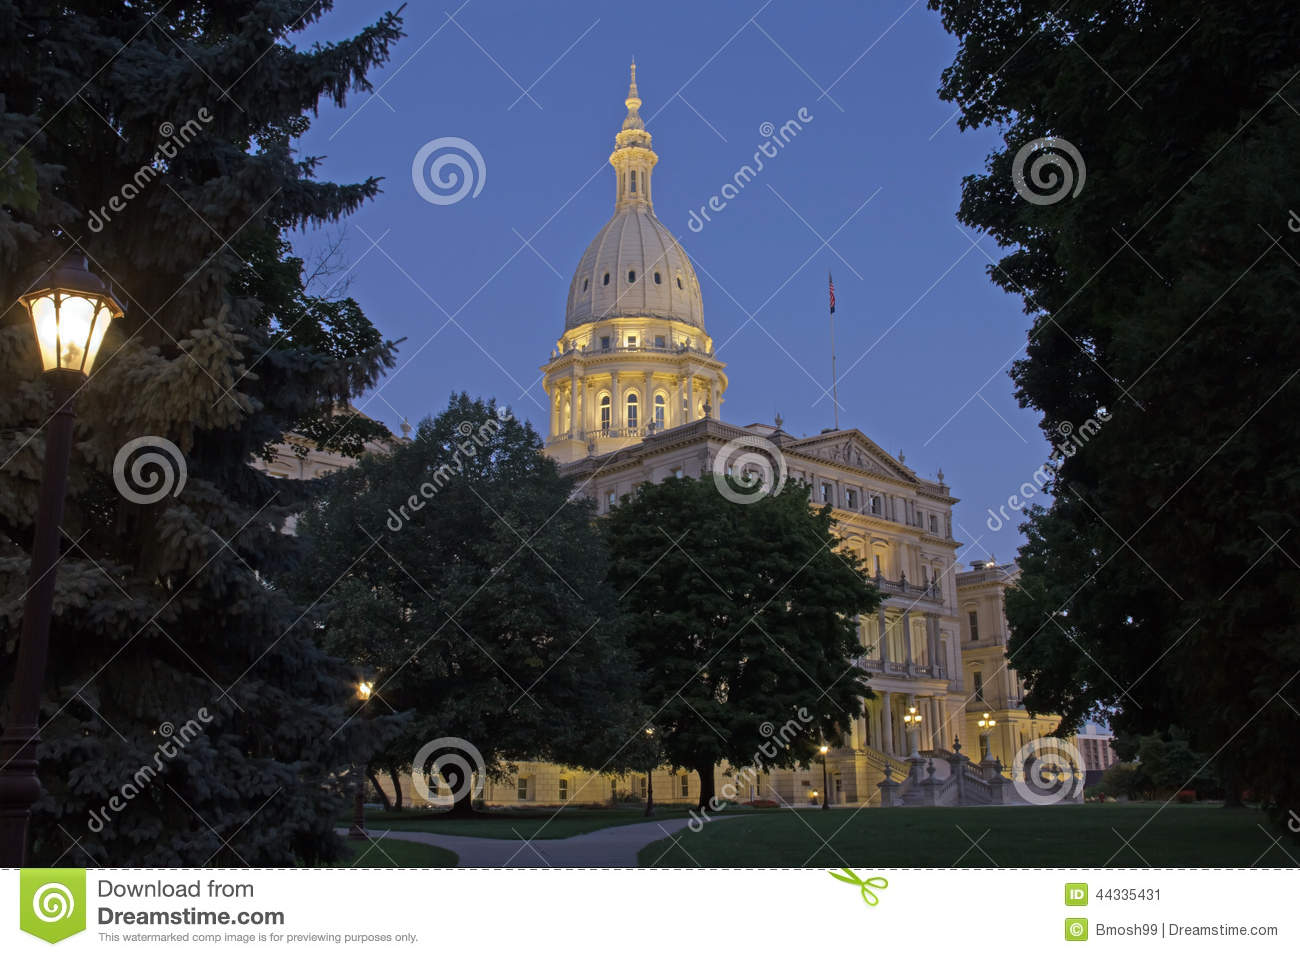 Night time picture of the Capital Building in Lansing Michigan